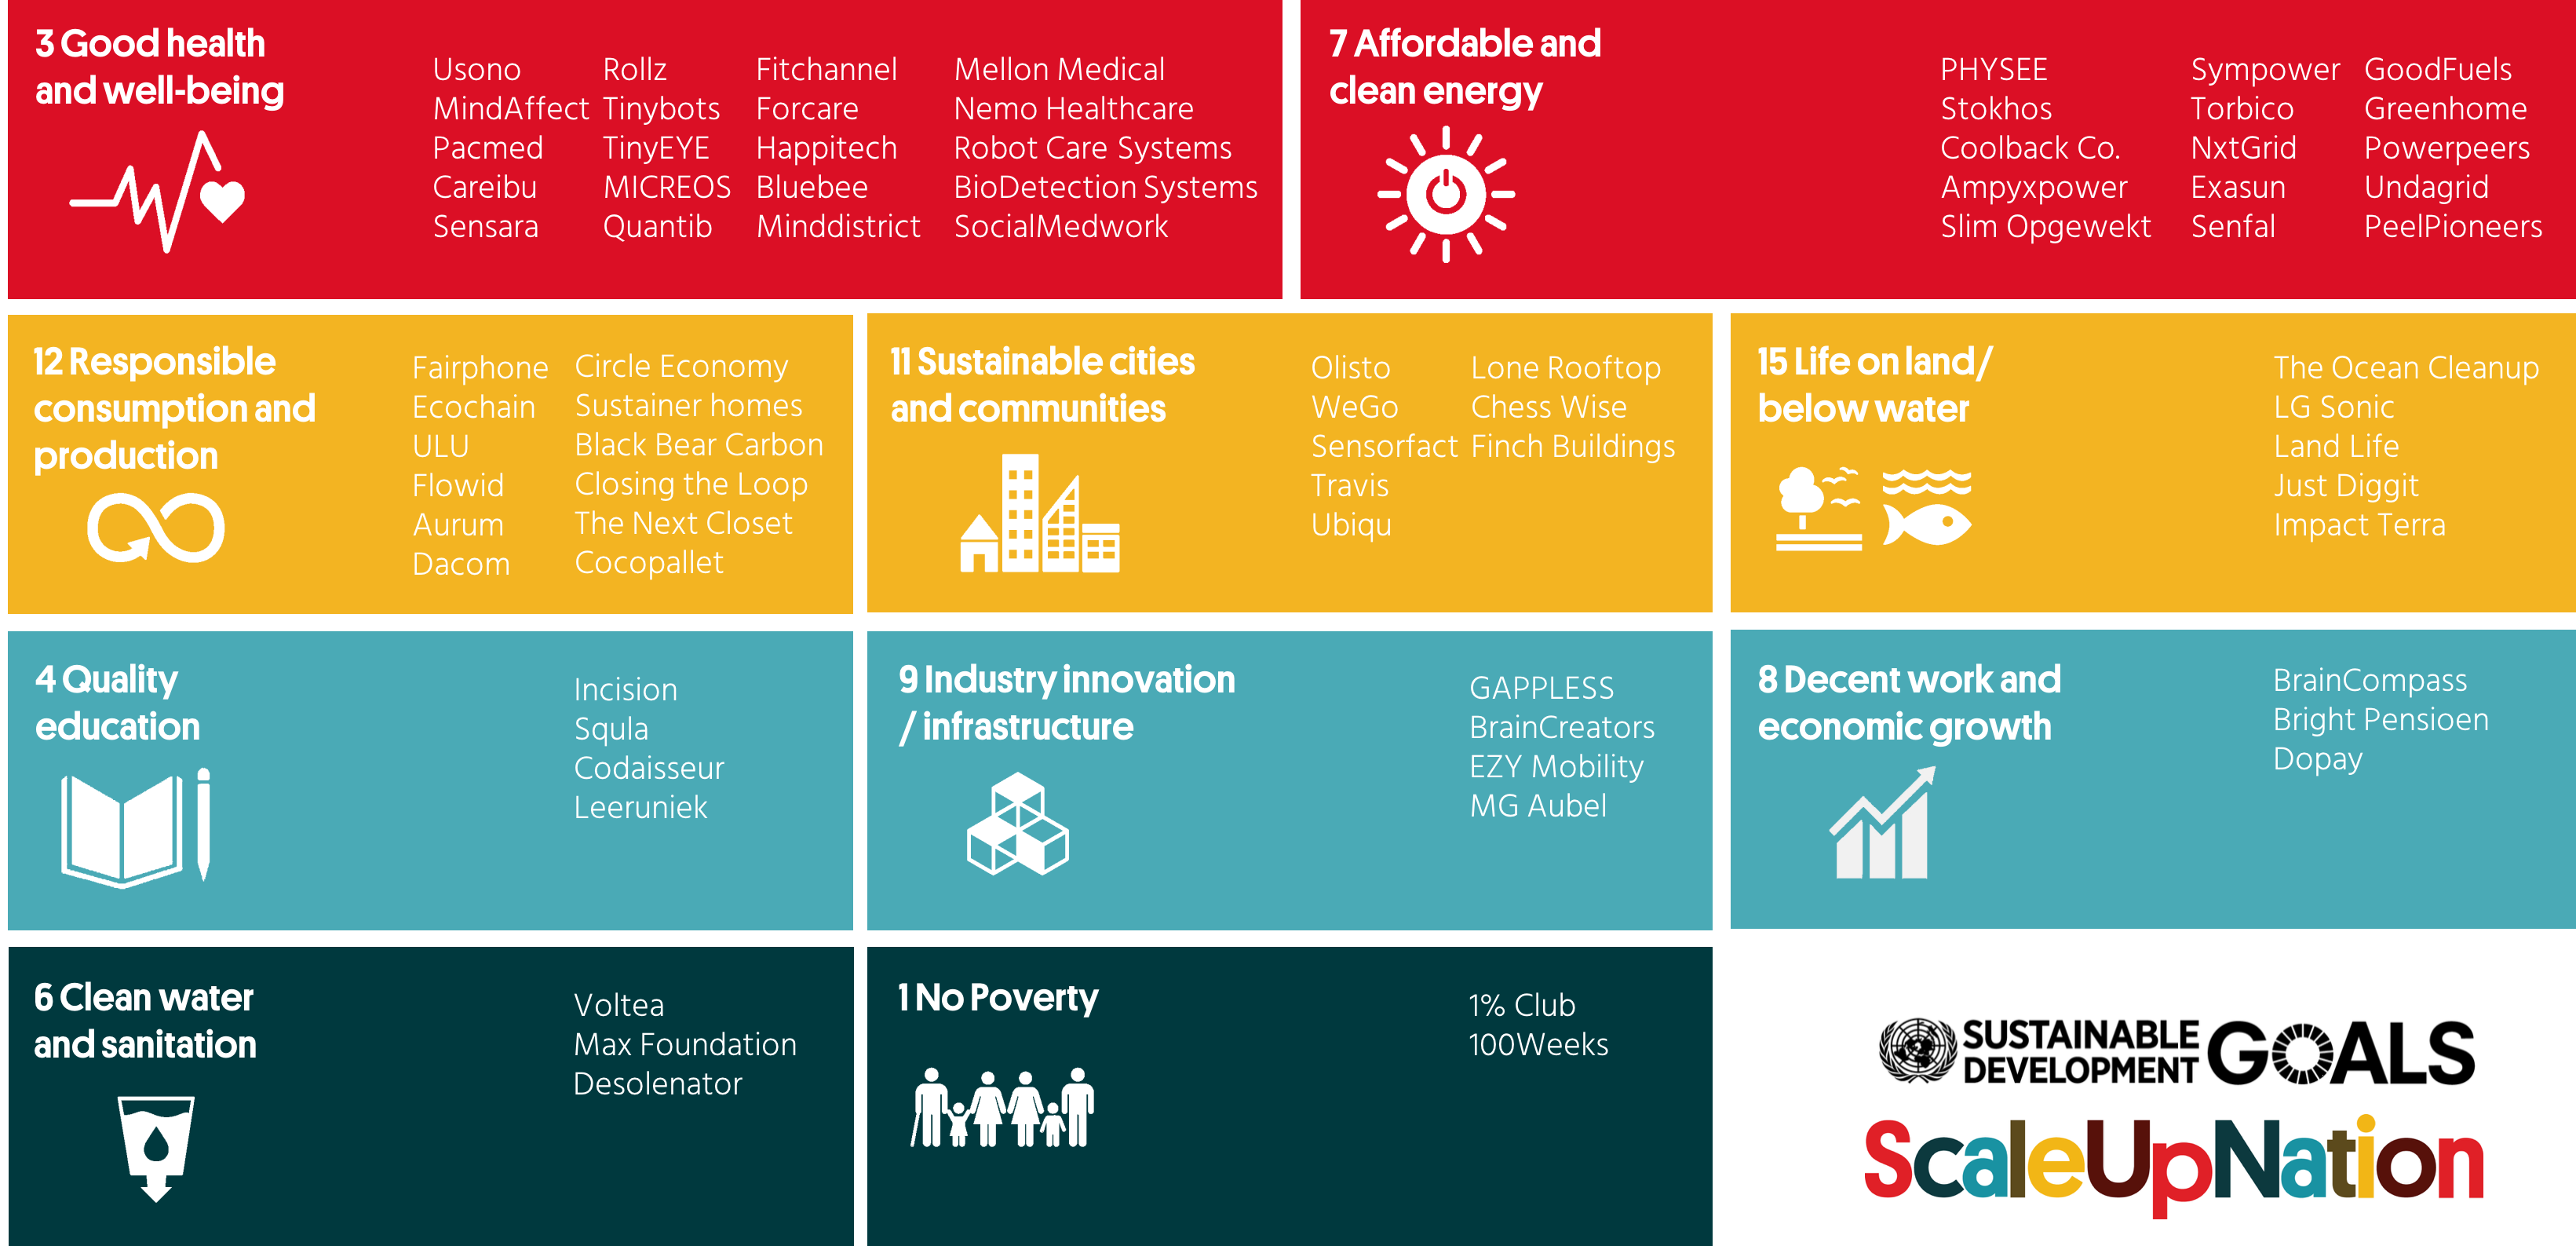 The scaleupnation scale-ups are impact driven, and work on 11 of the united nation's SDGs